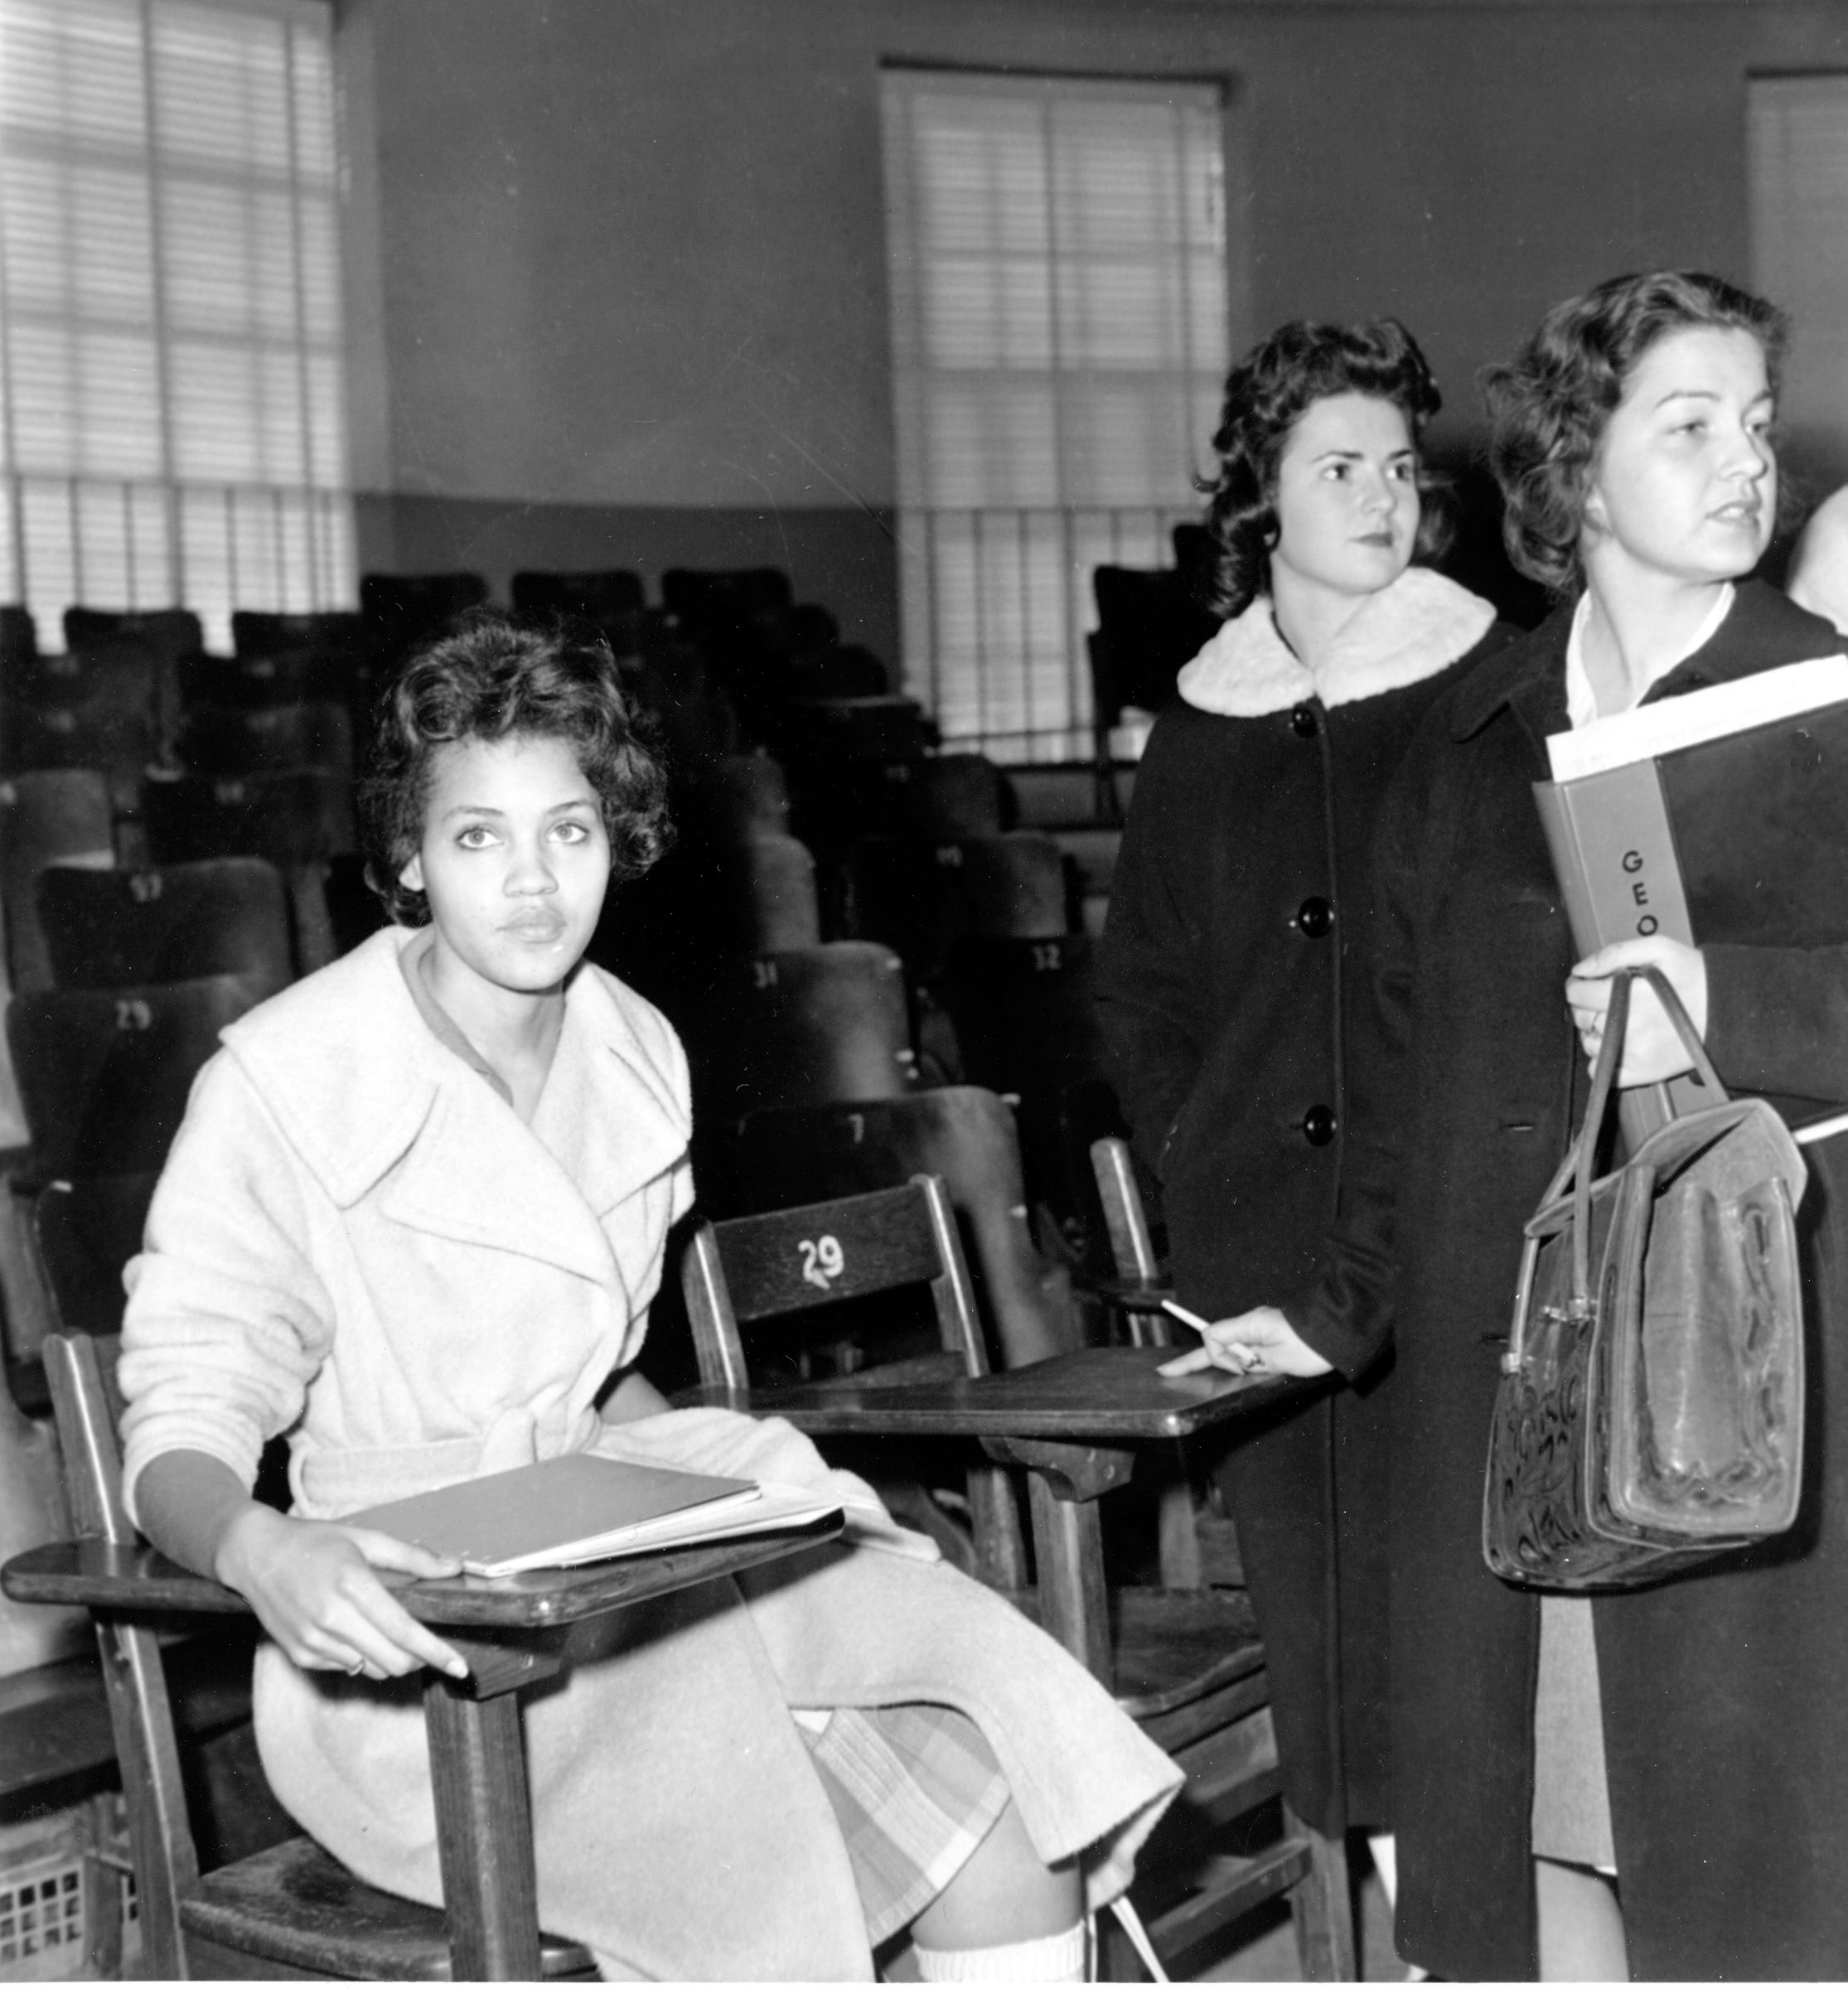 Charlayne Hunter, 18, the first black woman to attend University of Georgia, sits in one of her classes in Athens, Ga., on Jan. 11, 1961. The students at right are unidentified.  Hunter and 19-year-old Hamilton Holmes began classes today under court order.